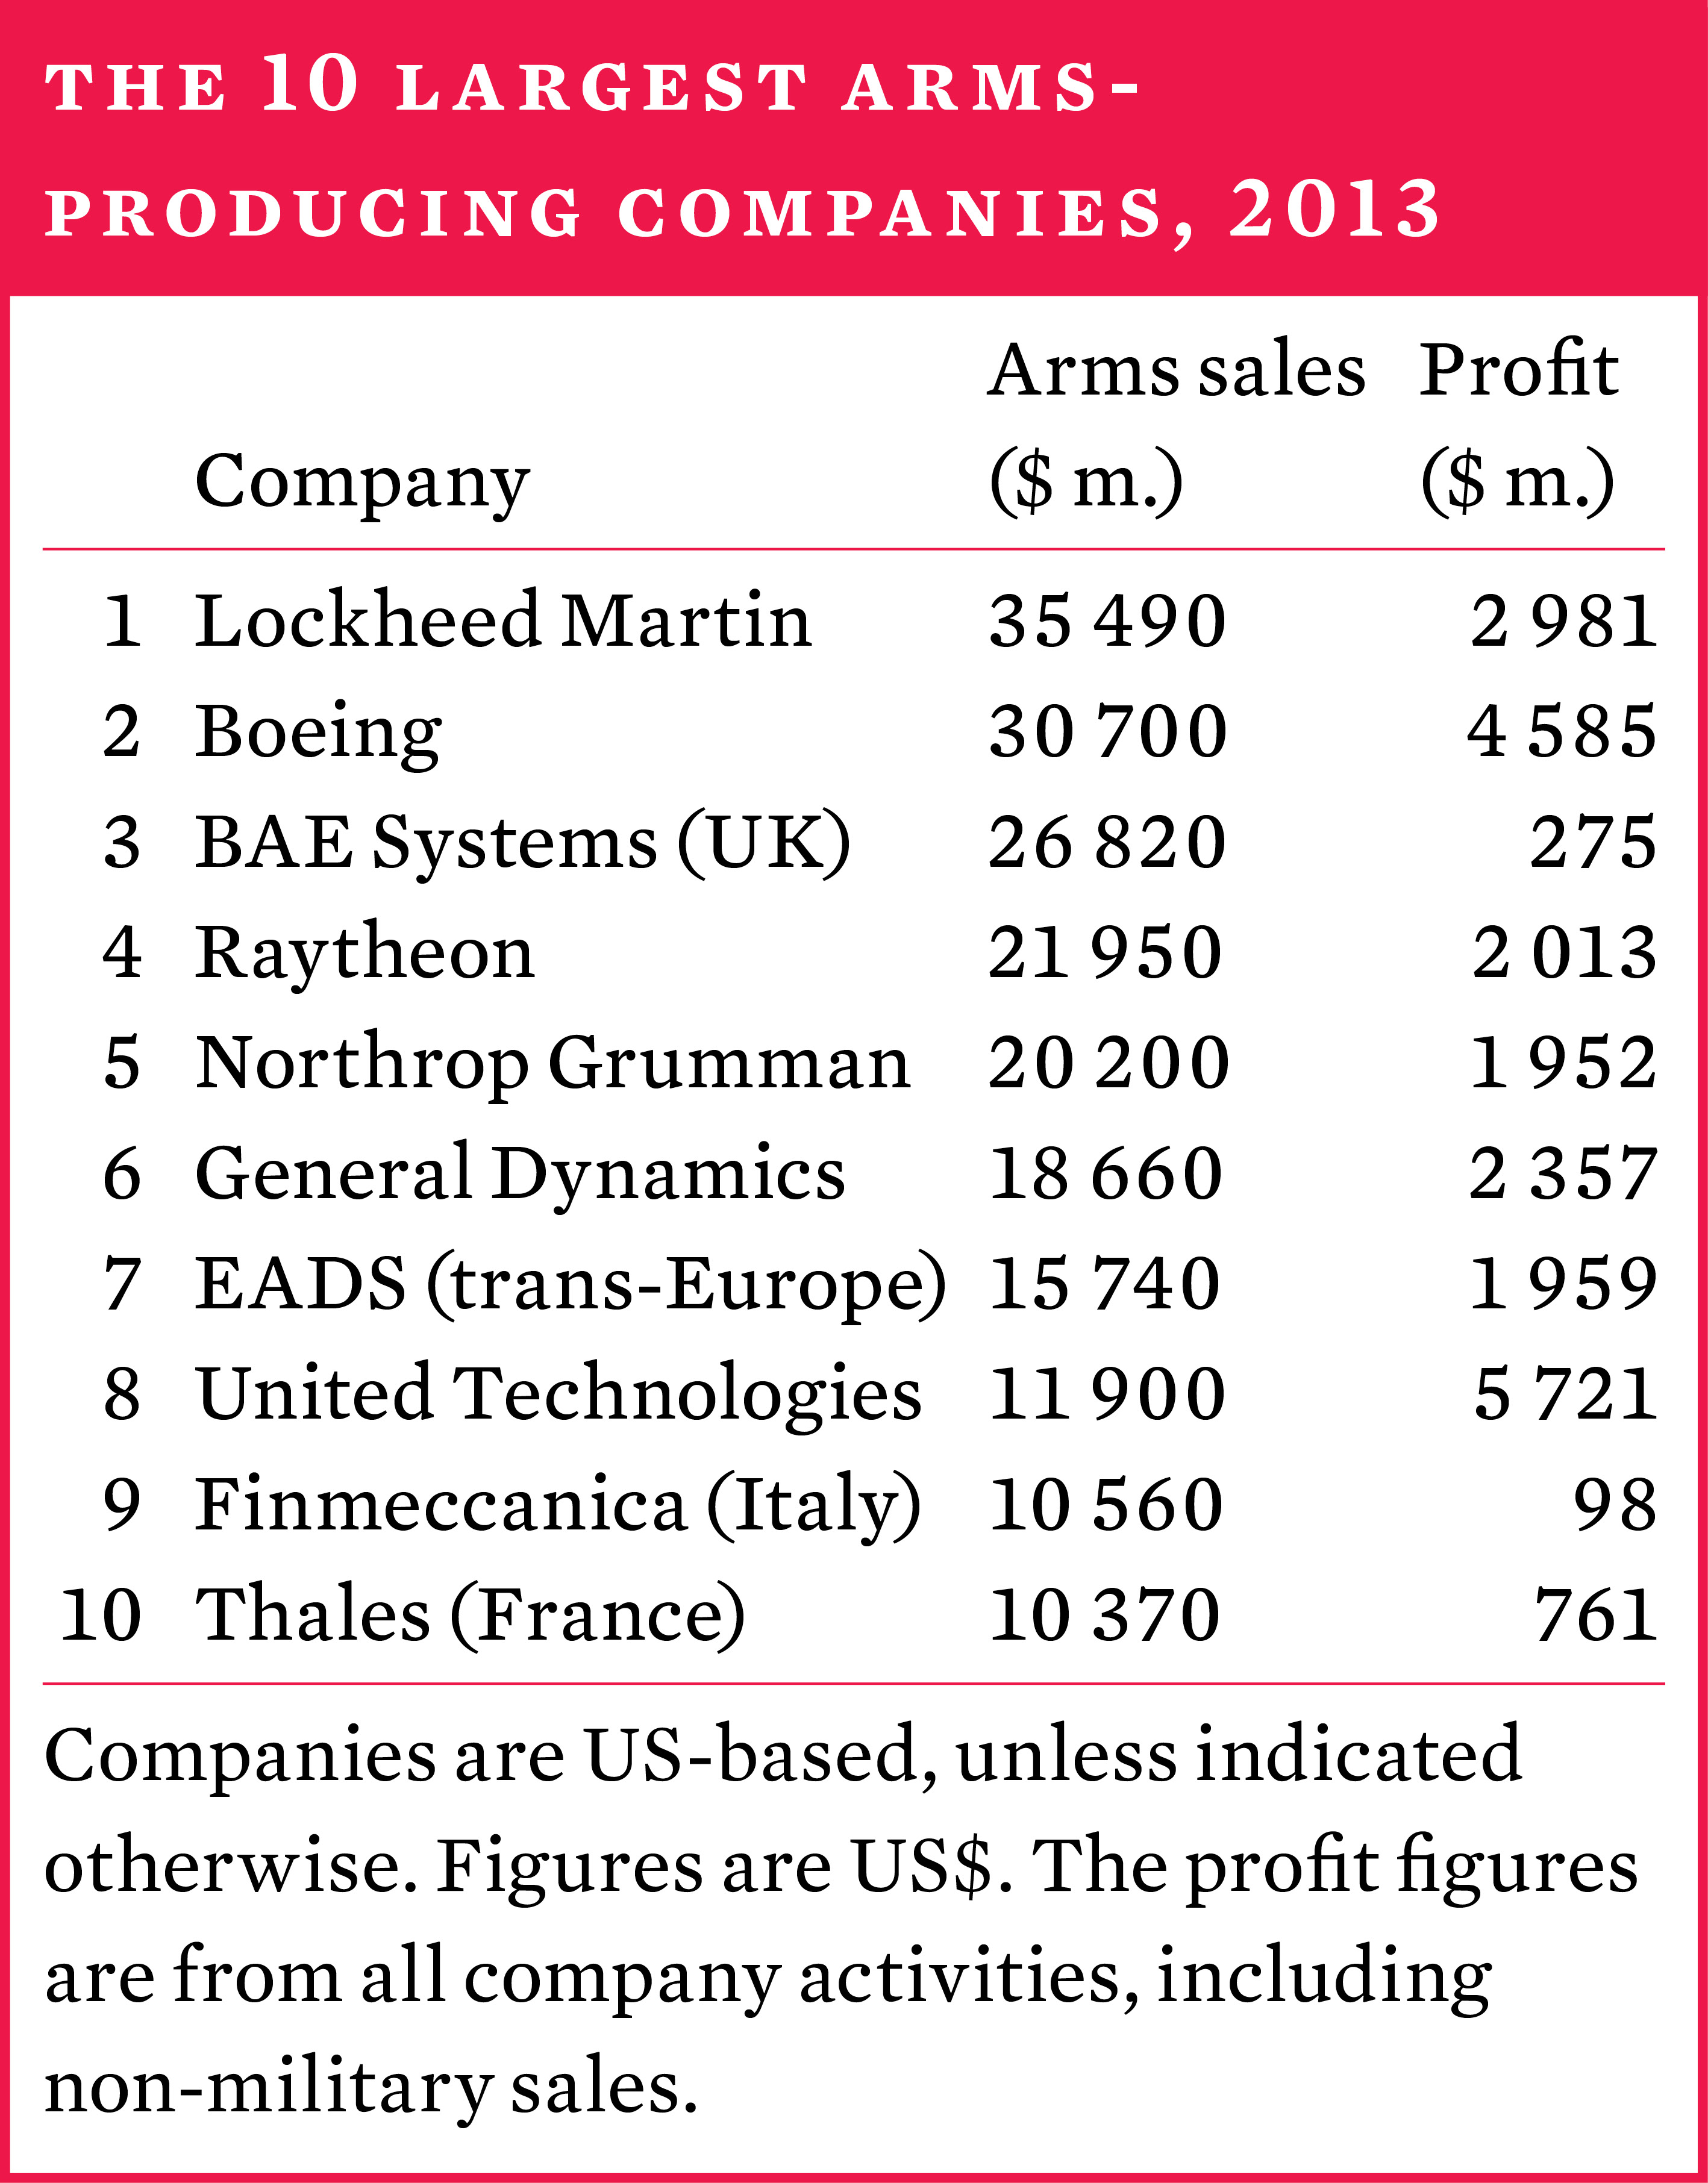 The 10 largest arms-producing companies, 2013